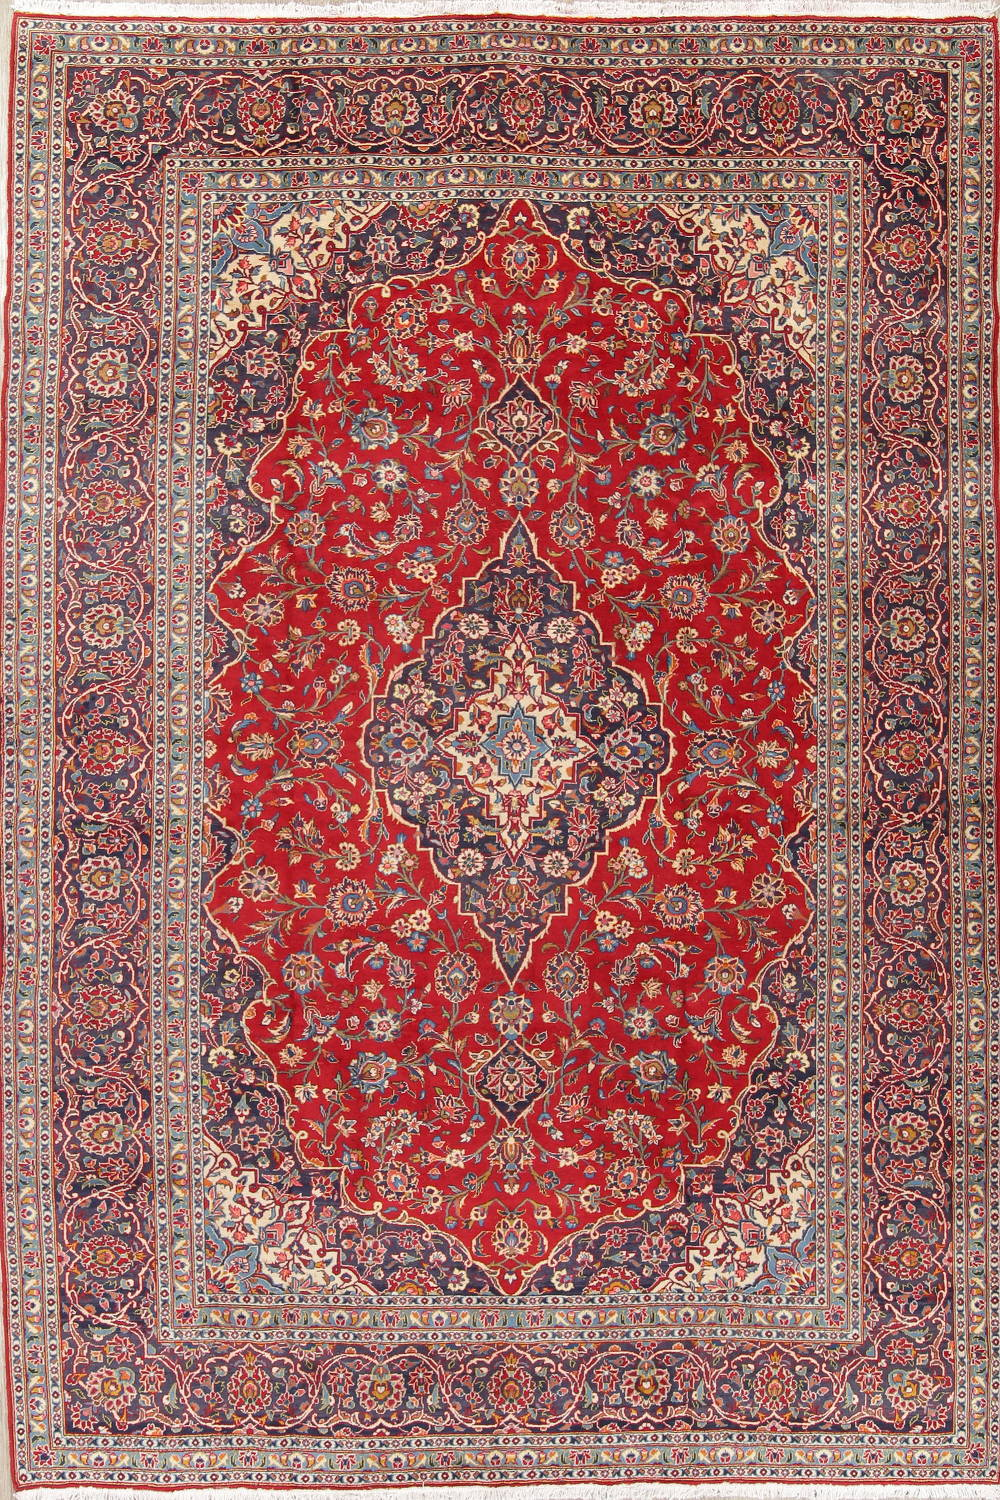 8'6″ x 12'4″ Hand-knotted Semi-Antique Red/Navy Persian Kashan Oriental Rug 12981047